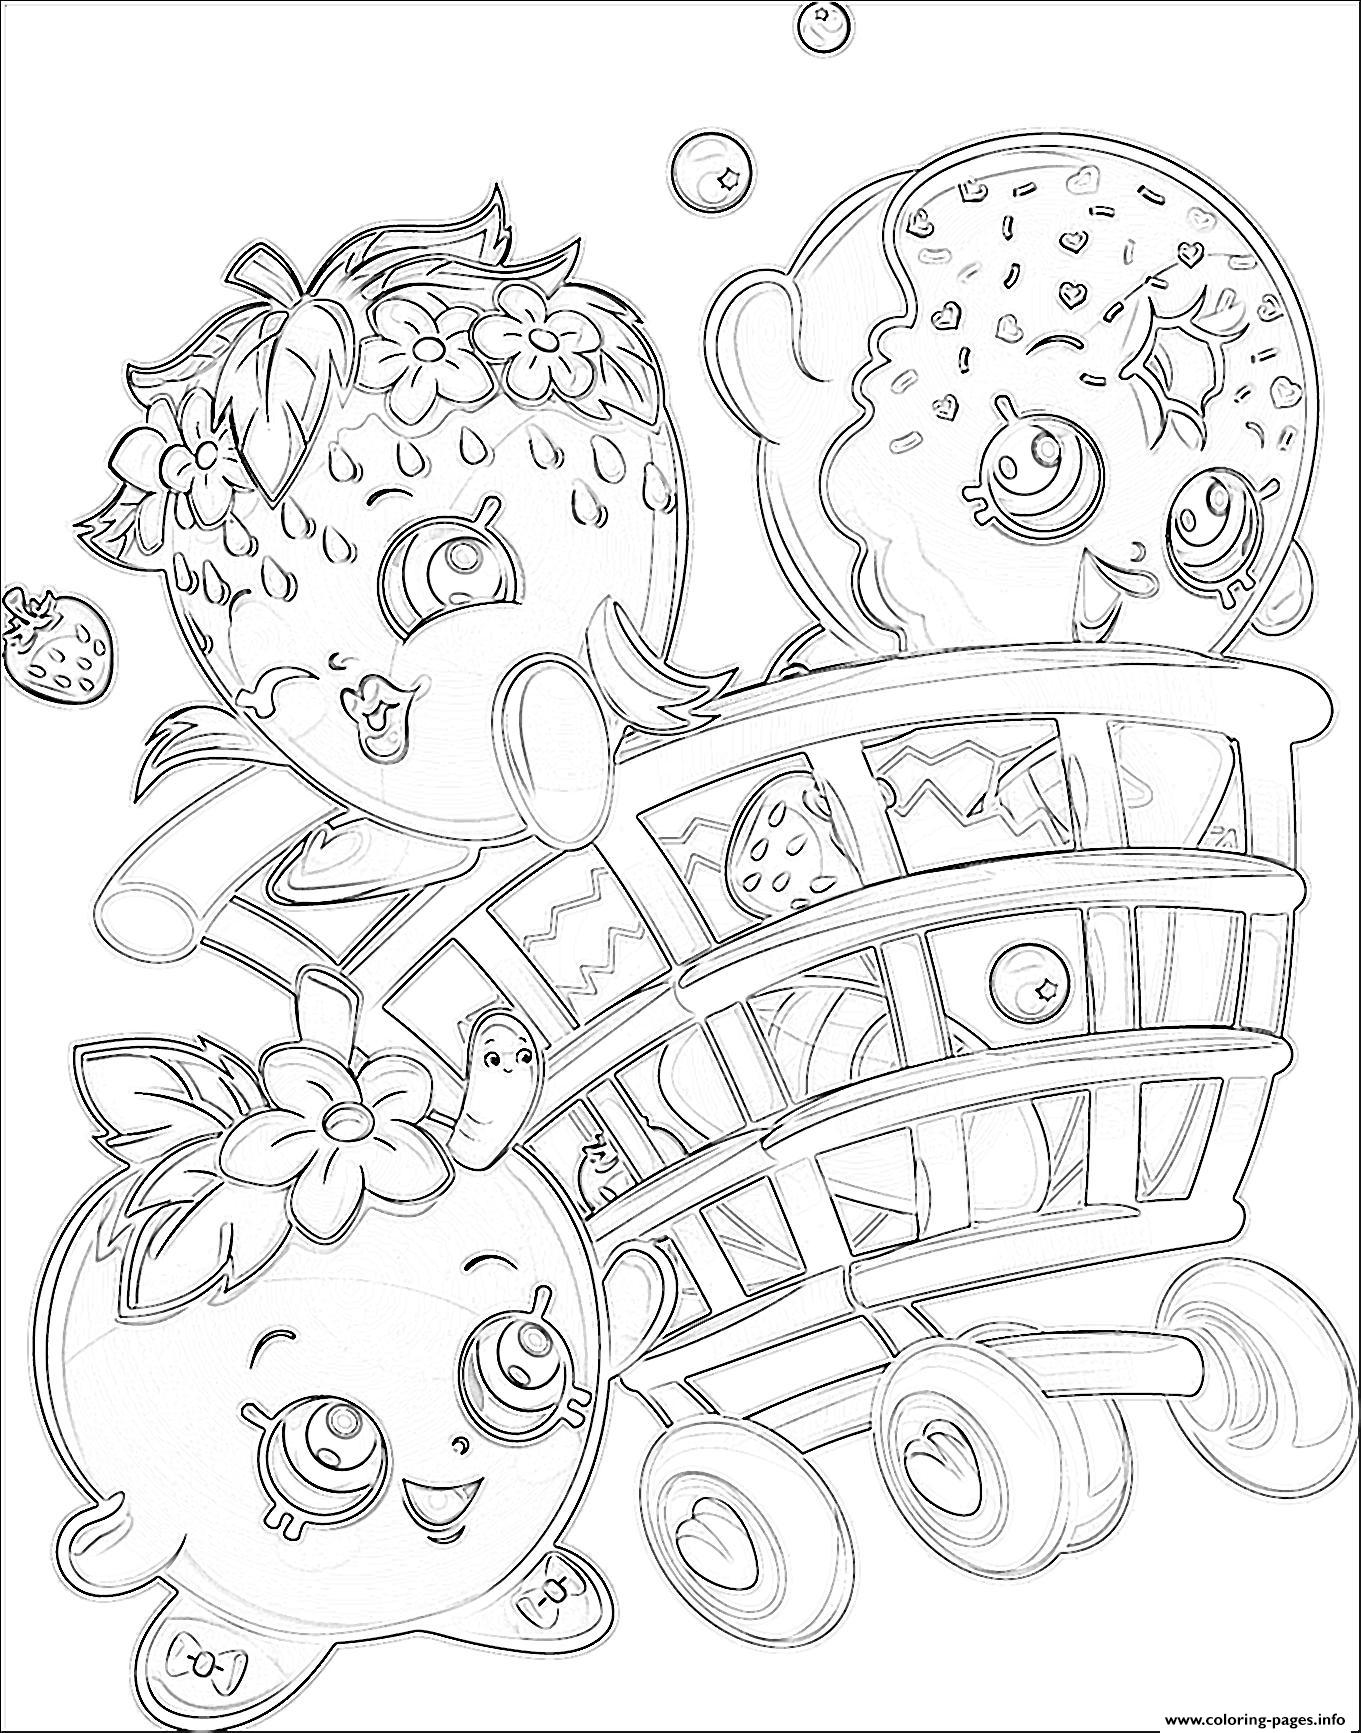 Chopkins Hero Group coloring pages